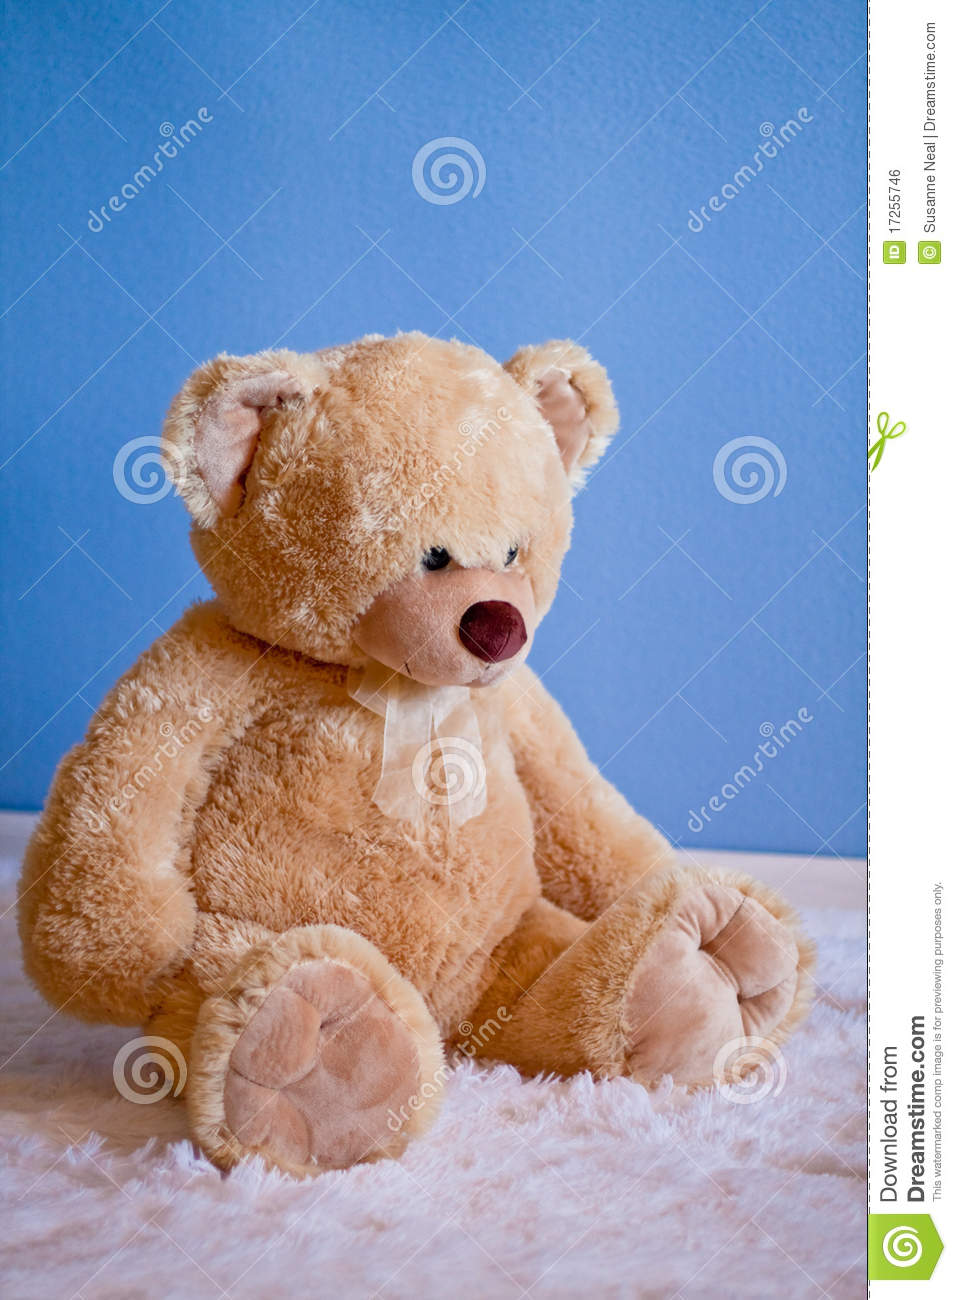 Hay Hay Chicken Stuffed Animal, Big Fluffy Teddy Bear In Front Of Blue Wall Stock Photo Image Of Precious Vertical 17255746